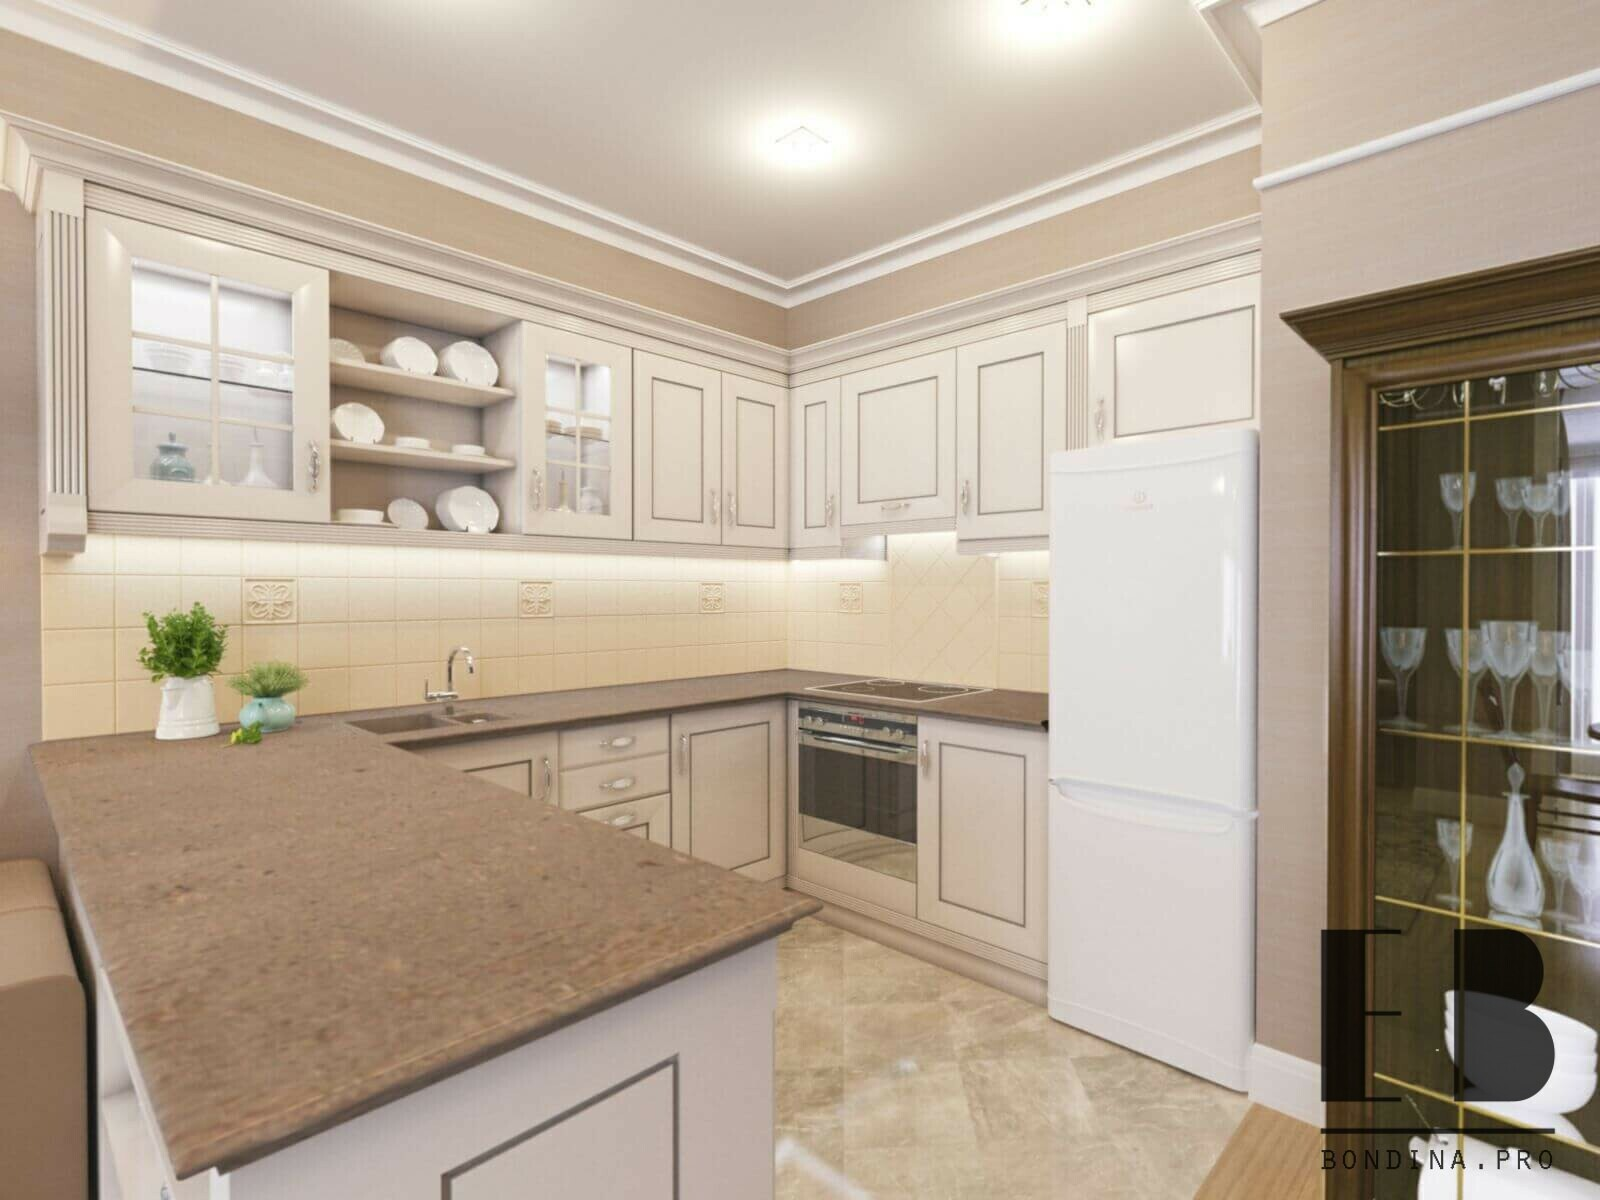 Classic style kitchen design with white cabinets